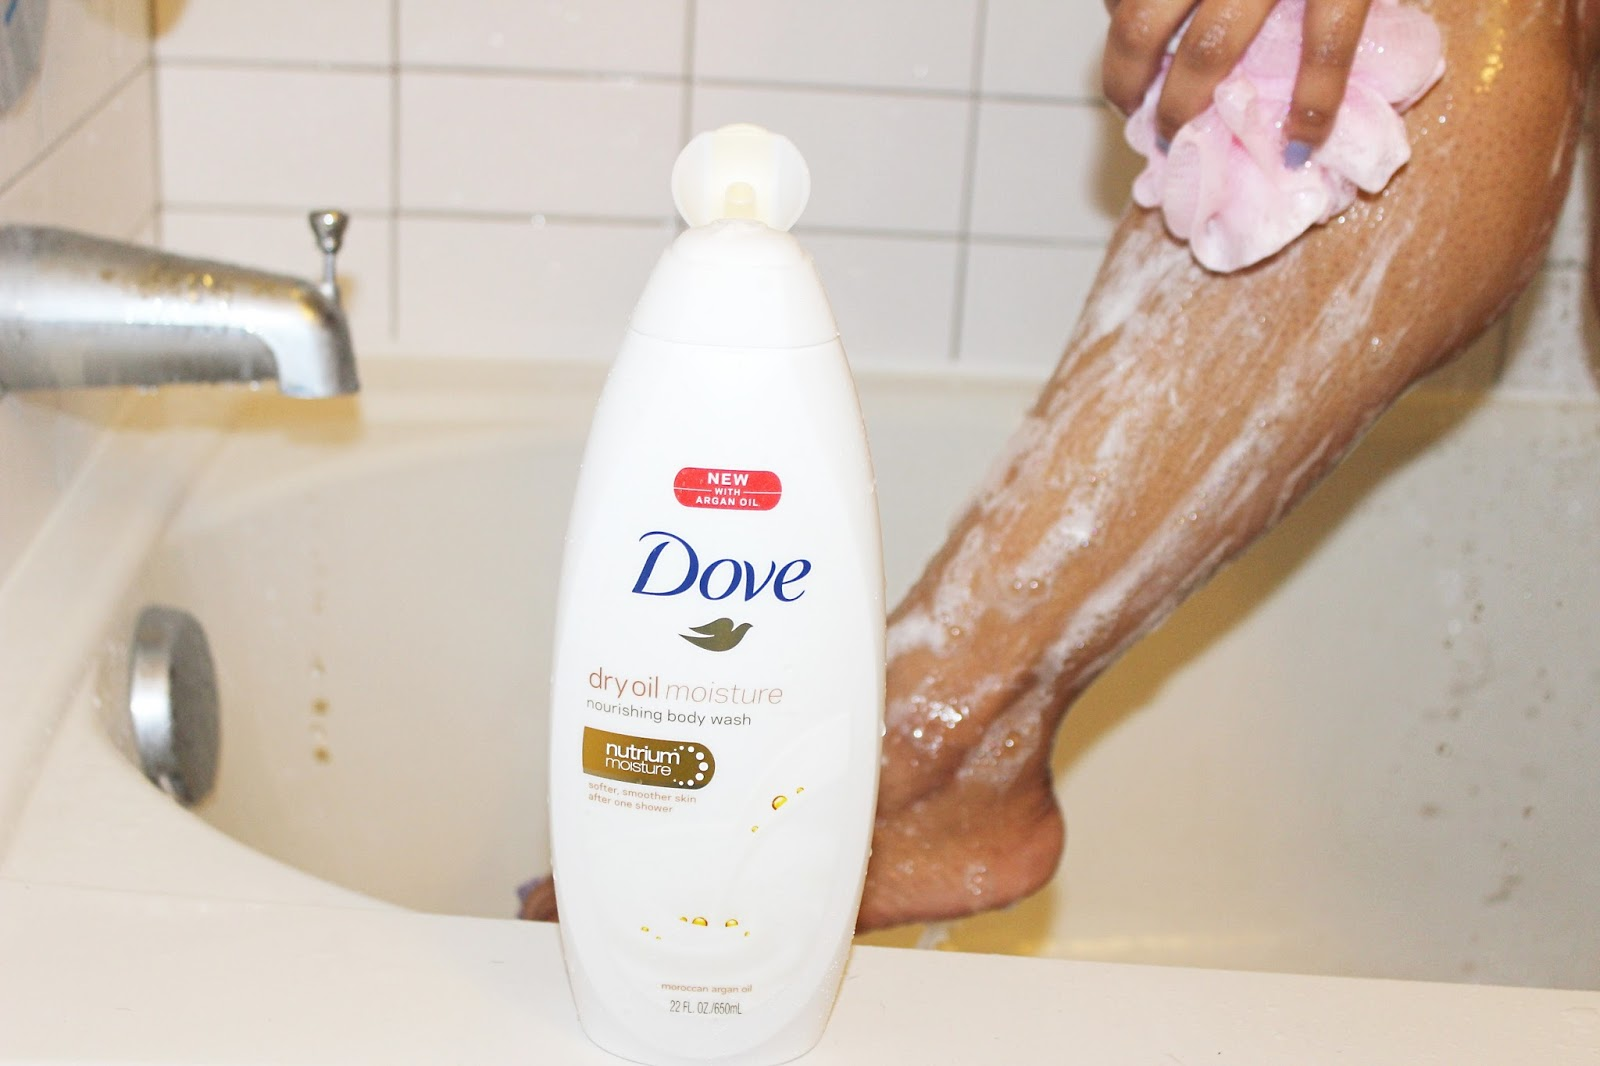 dove, dove soap, dove body wash, beauty routine, smooth skin, protect dry skin